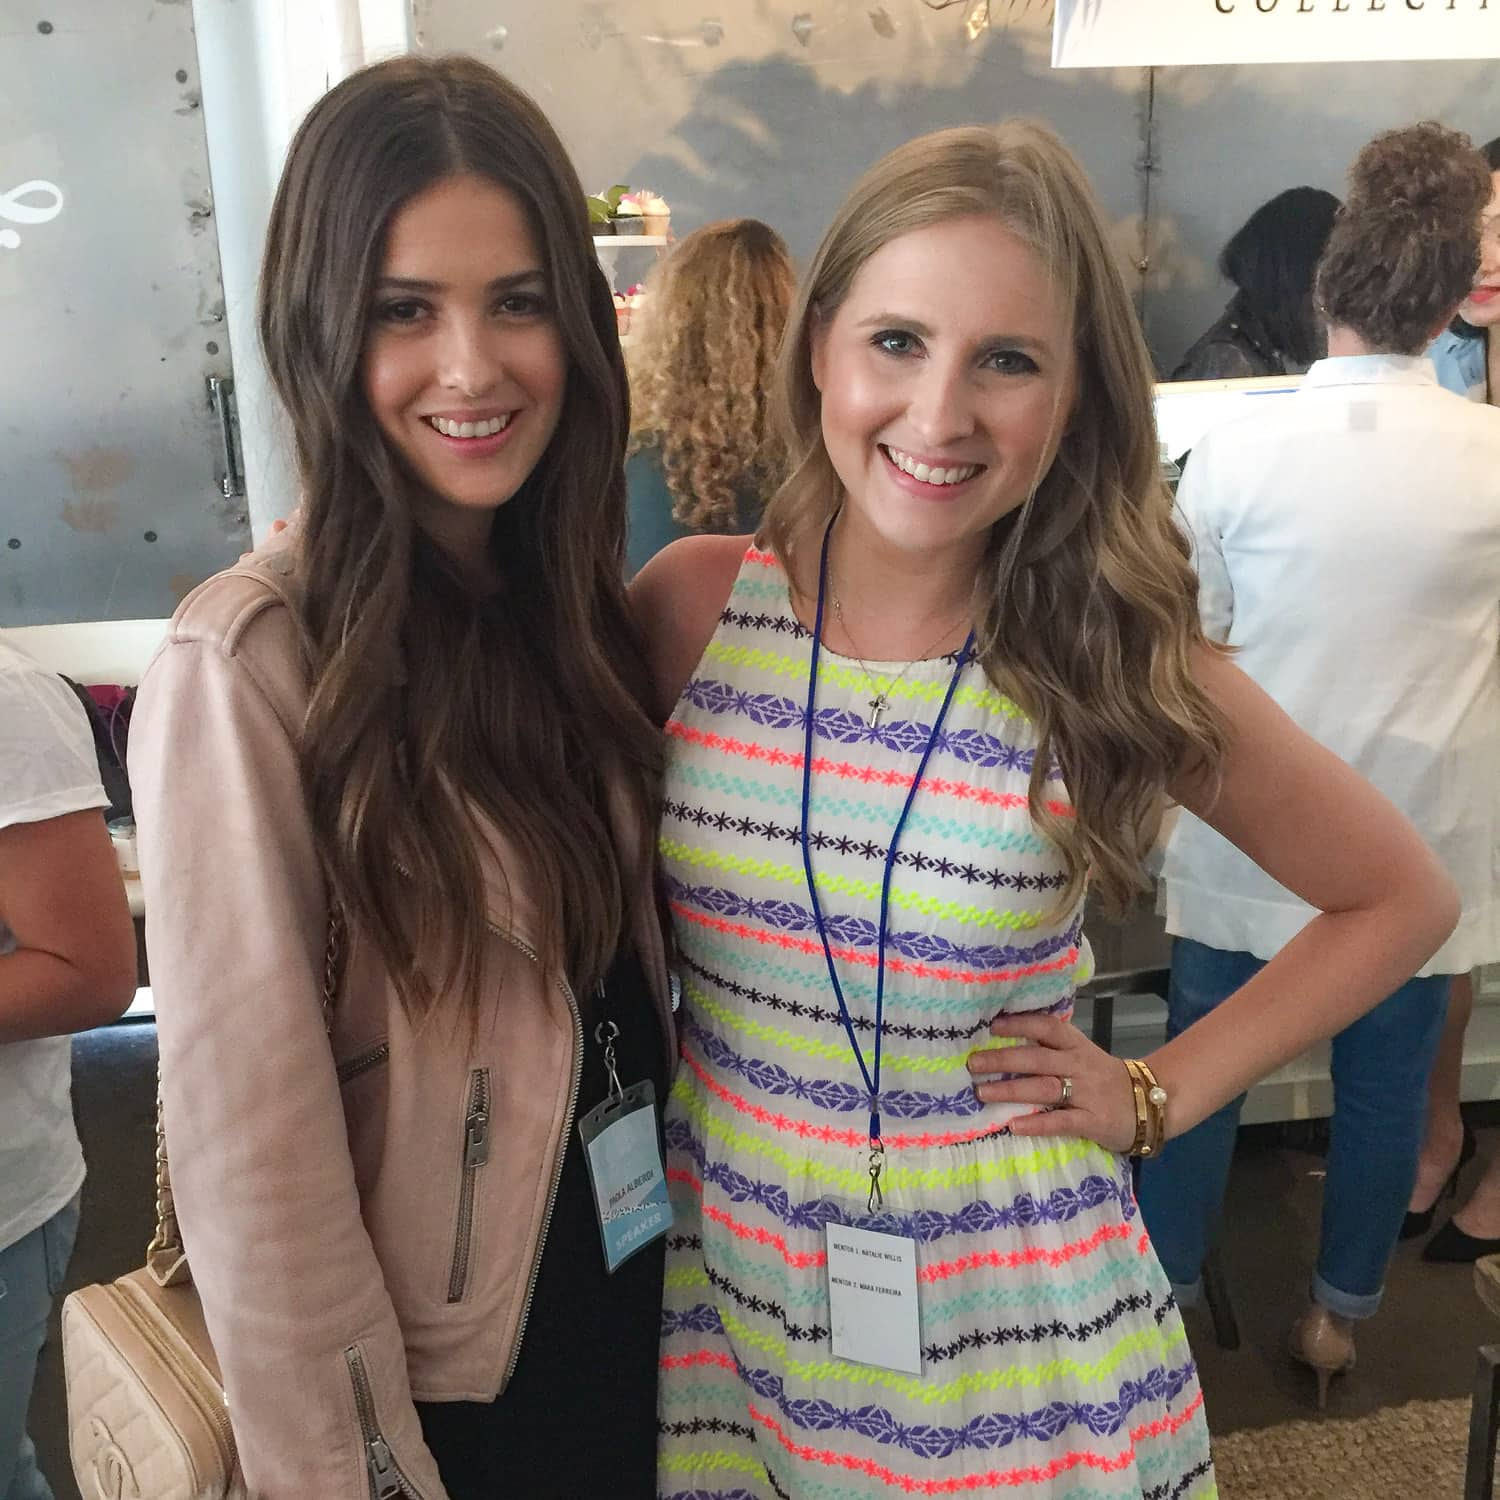 Fashion bloggers Blank Itinerary and Ashley Brooke Nicholas | Create + Cultivate Los Angeles 2016 Conference Recap + Review | Beauty and Style Blogger Ashley Brooke Nicholas